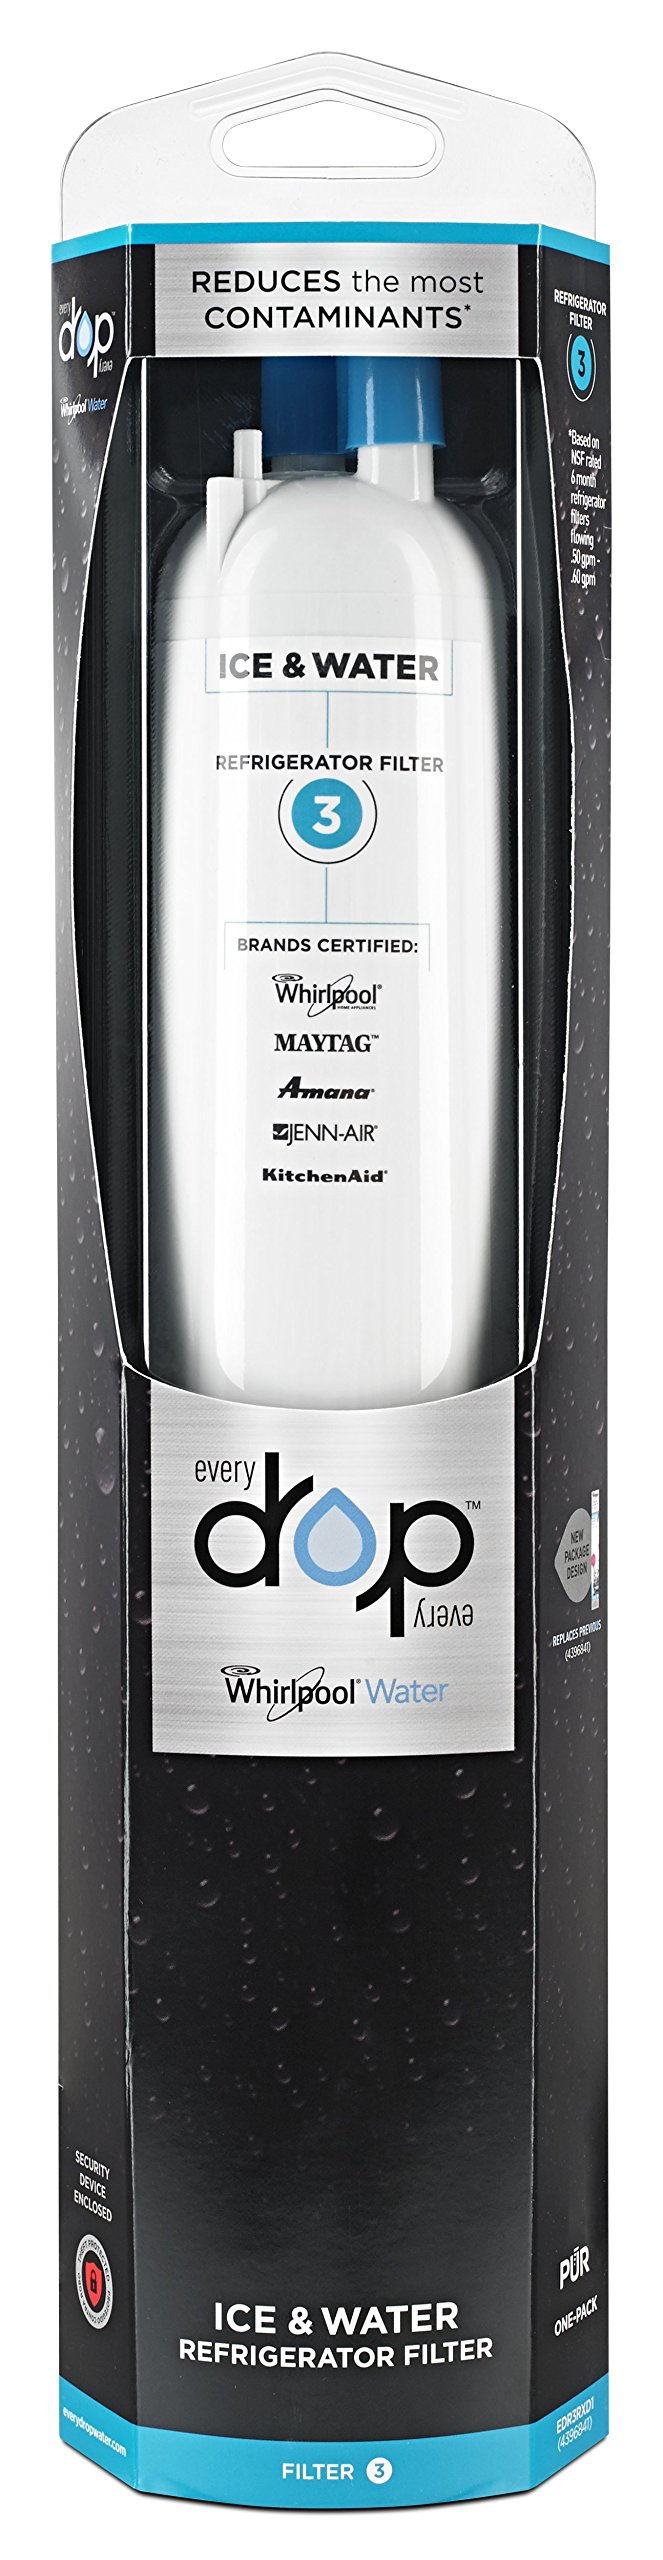 Whirlpool EDR3RXD1 EveryDrop by Refrigerator Water Filter 3 (Pack of 1)